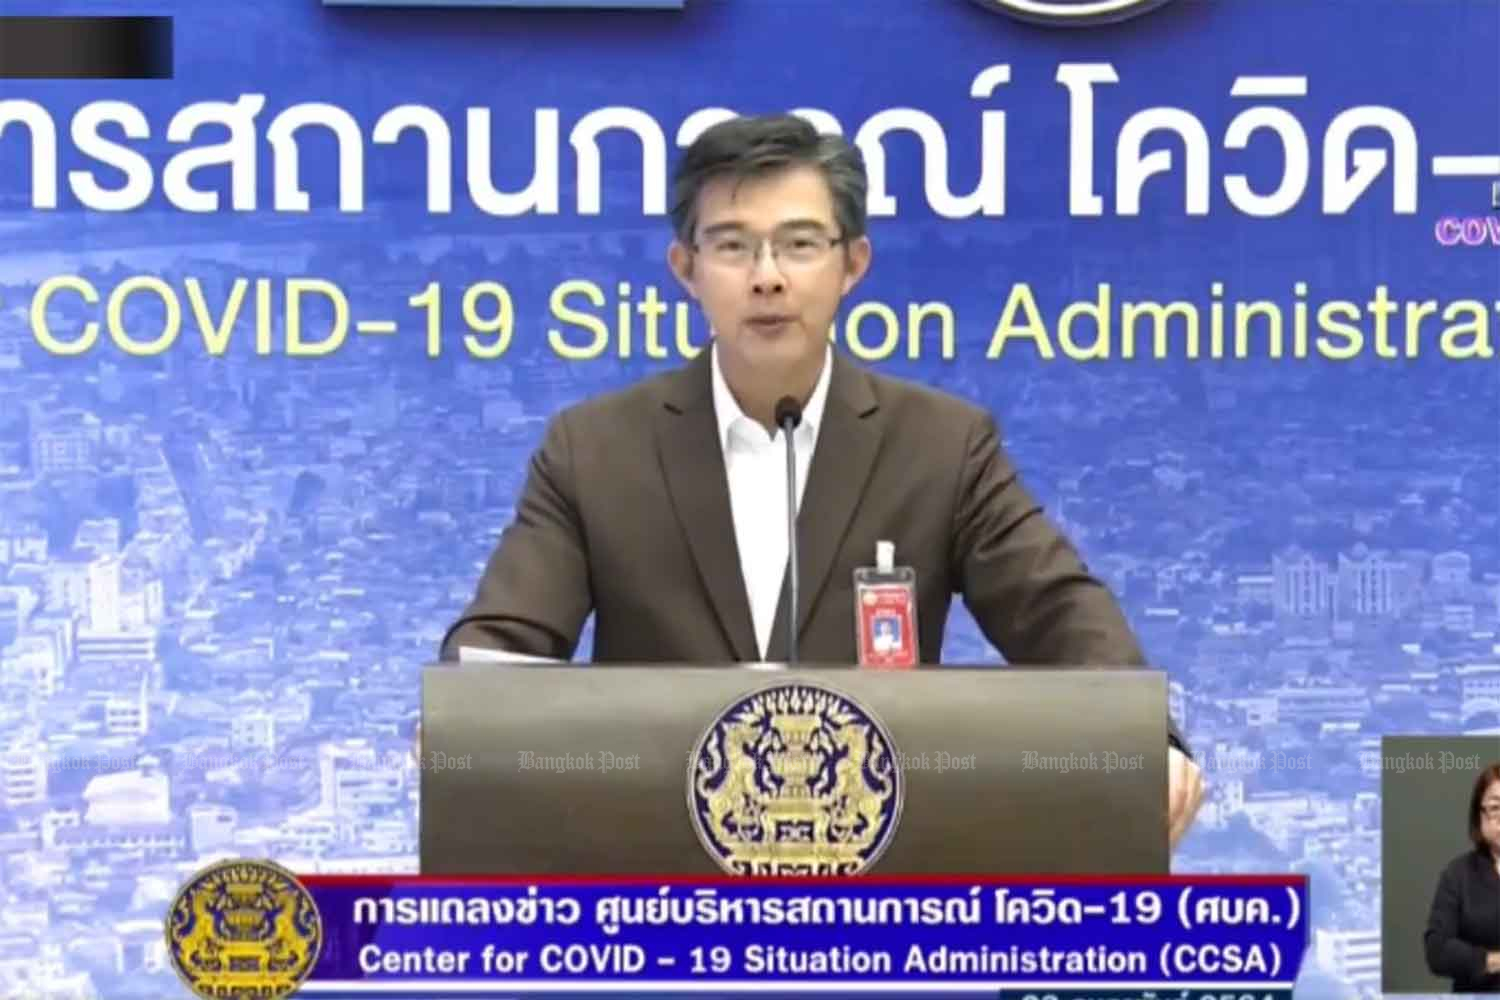 Dr Taweesilp Visanuyothin, spokesman for the Centre for Covid-19 Situation Administration, announces the Covid-19 vaccination schedule at Government House in Bangkok on Tuesday. (Screenshot)